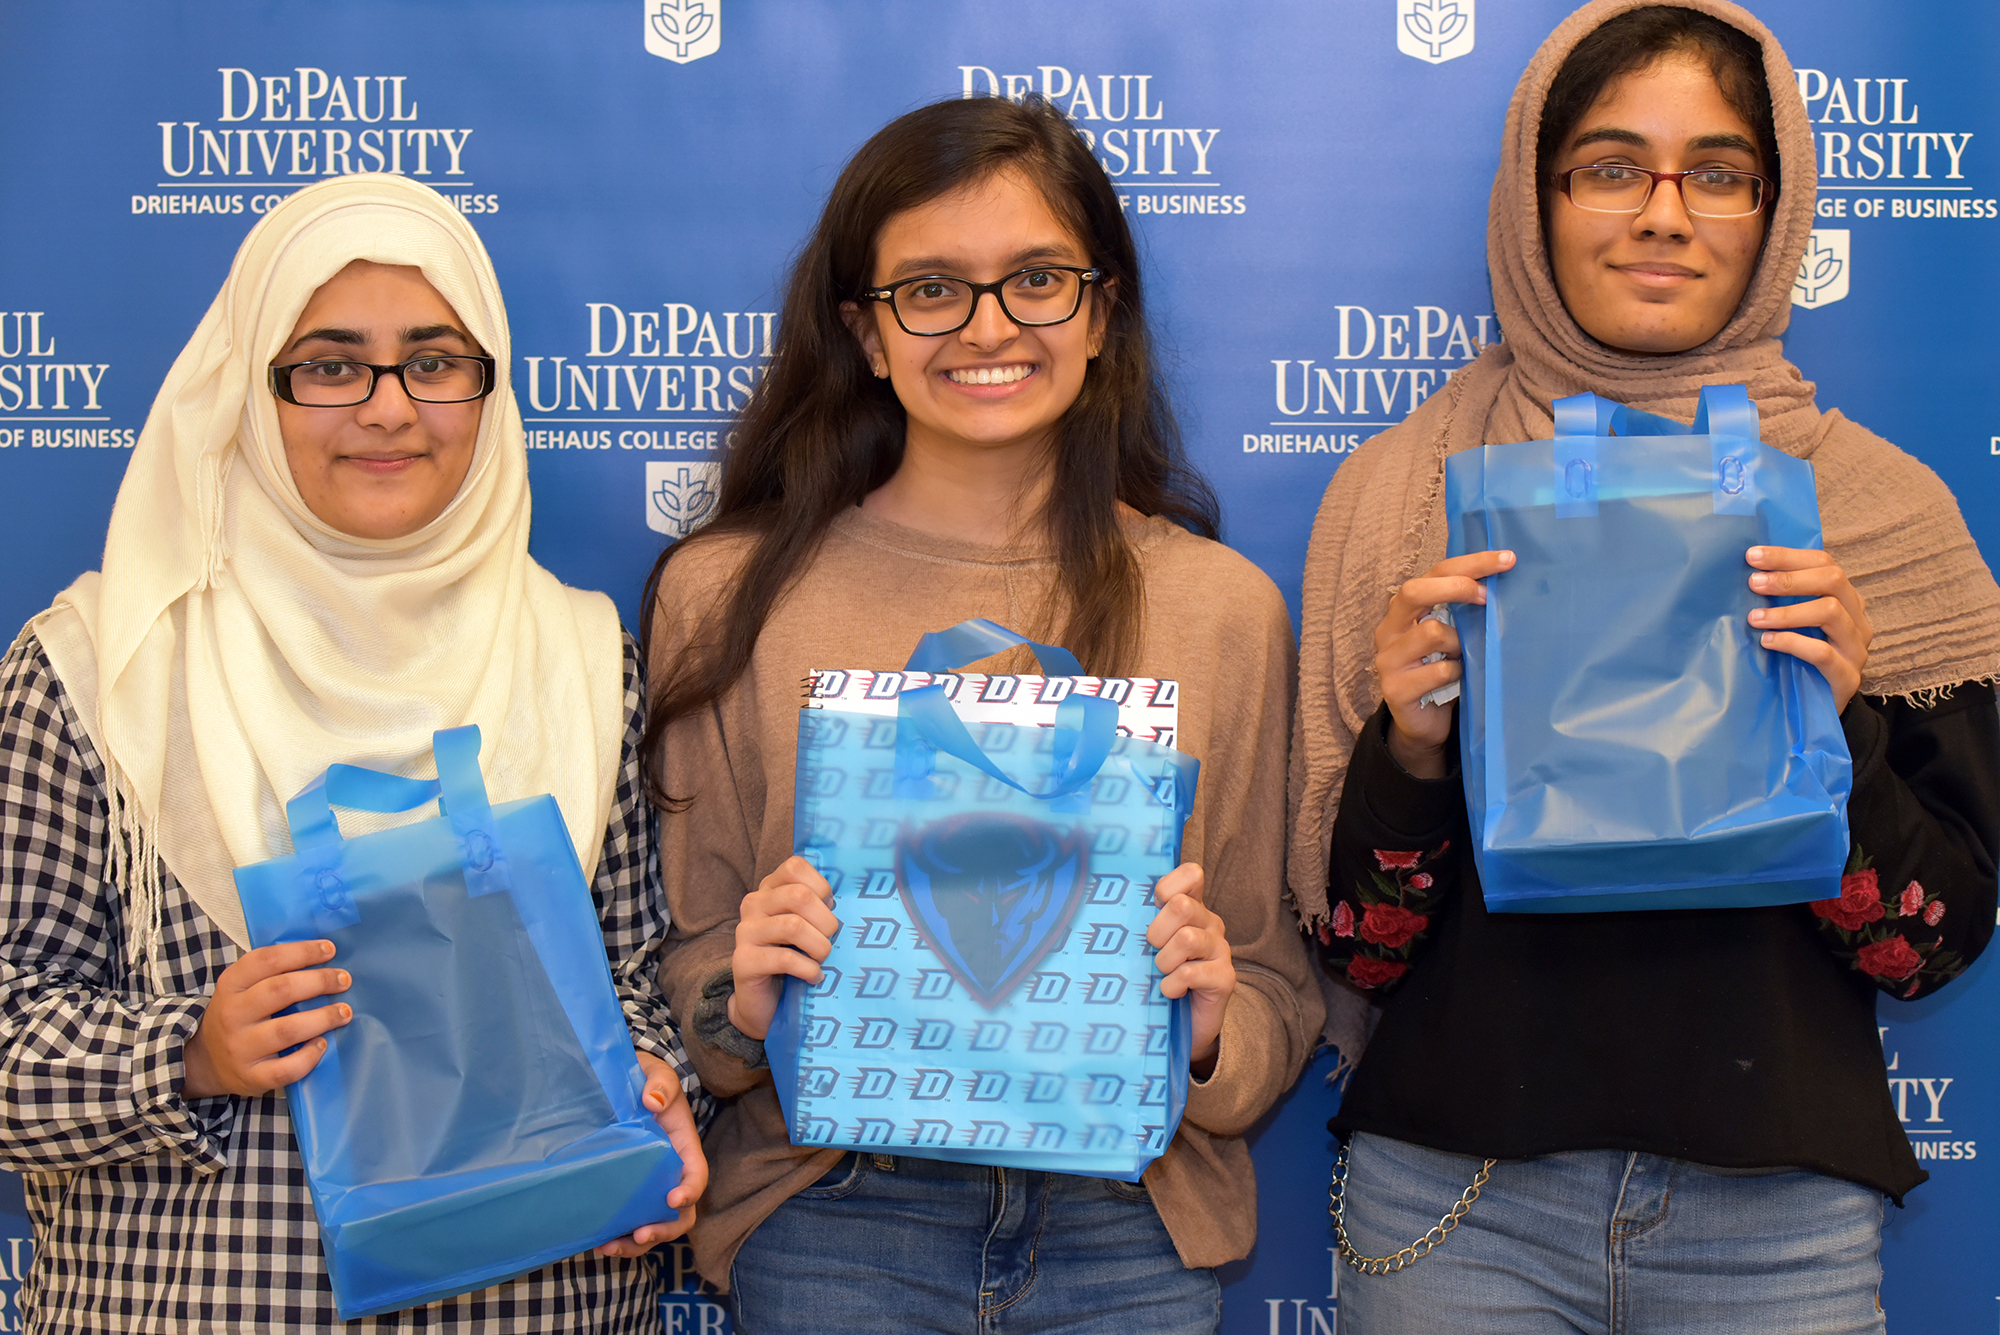 New Blue Demons celebrate at Driehaus New Student Reception